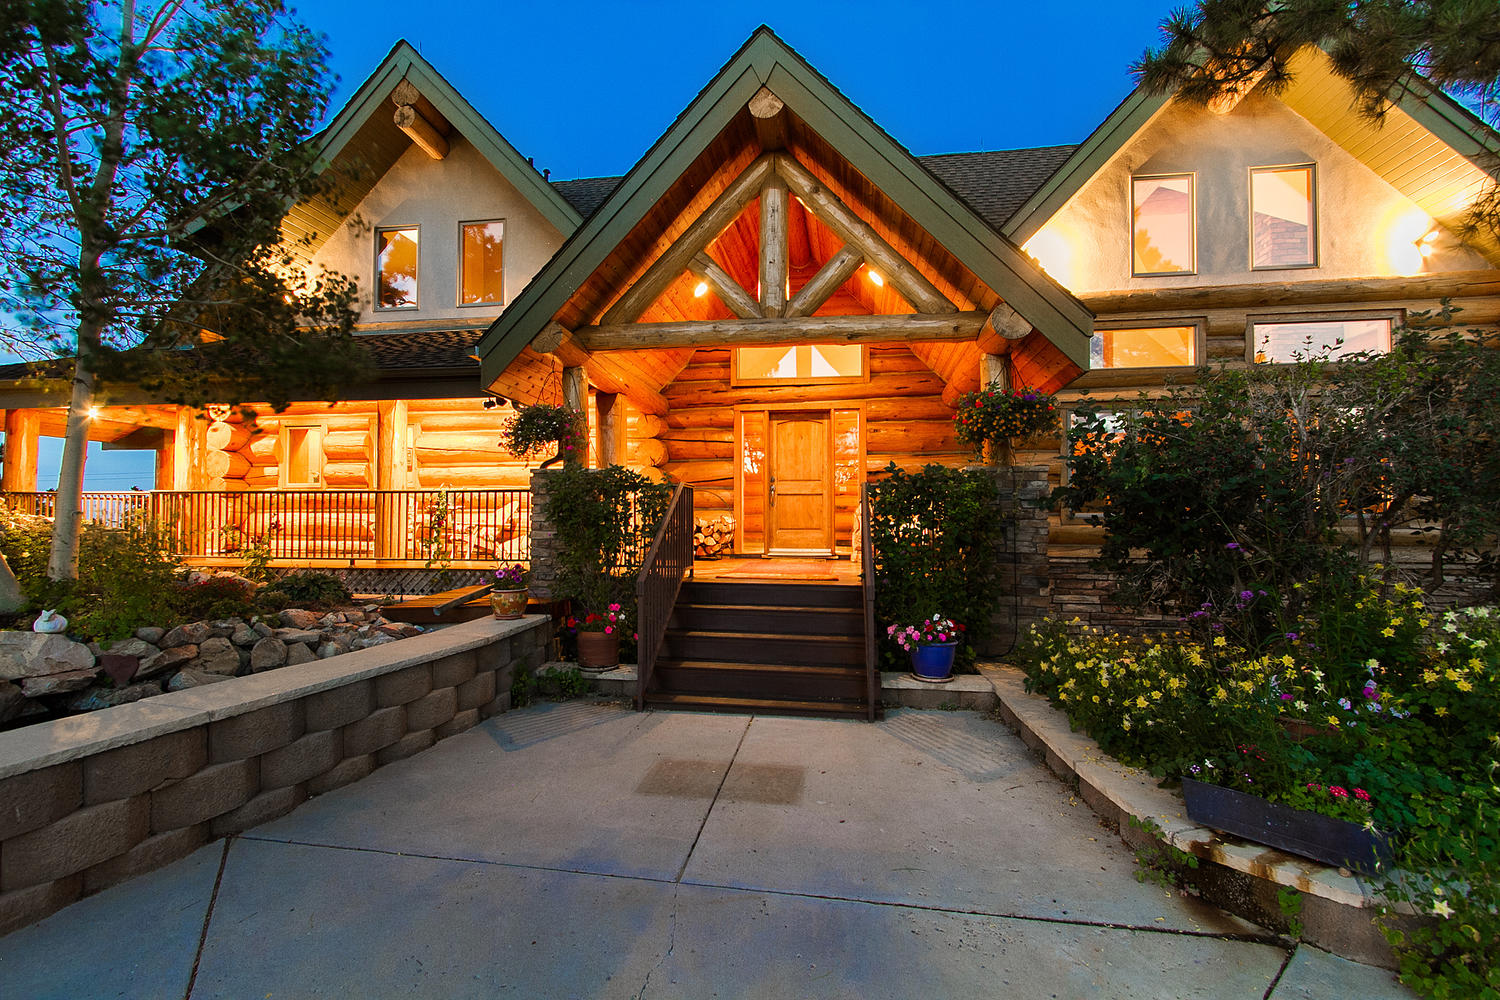 Single Family Home for Sale at Storybook Log Home 10973 Mill Hollow Road Littleton, Colorado, 80127 United States